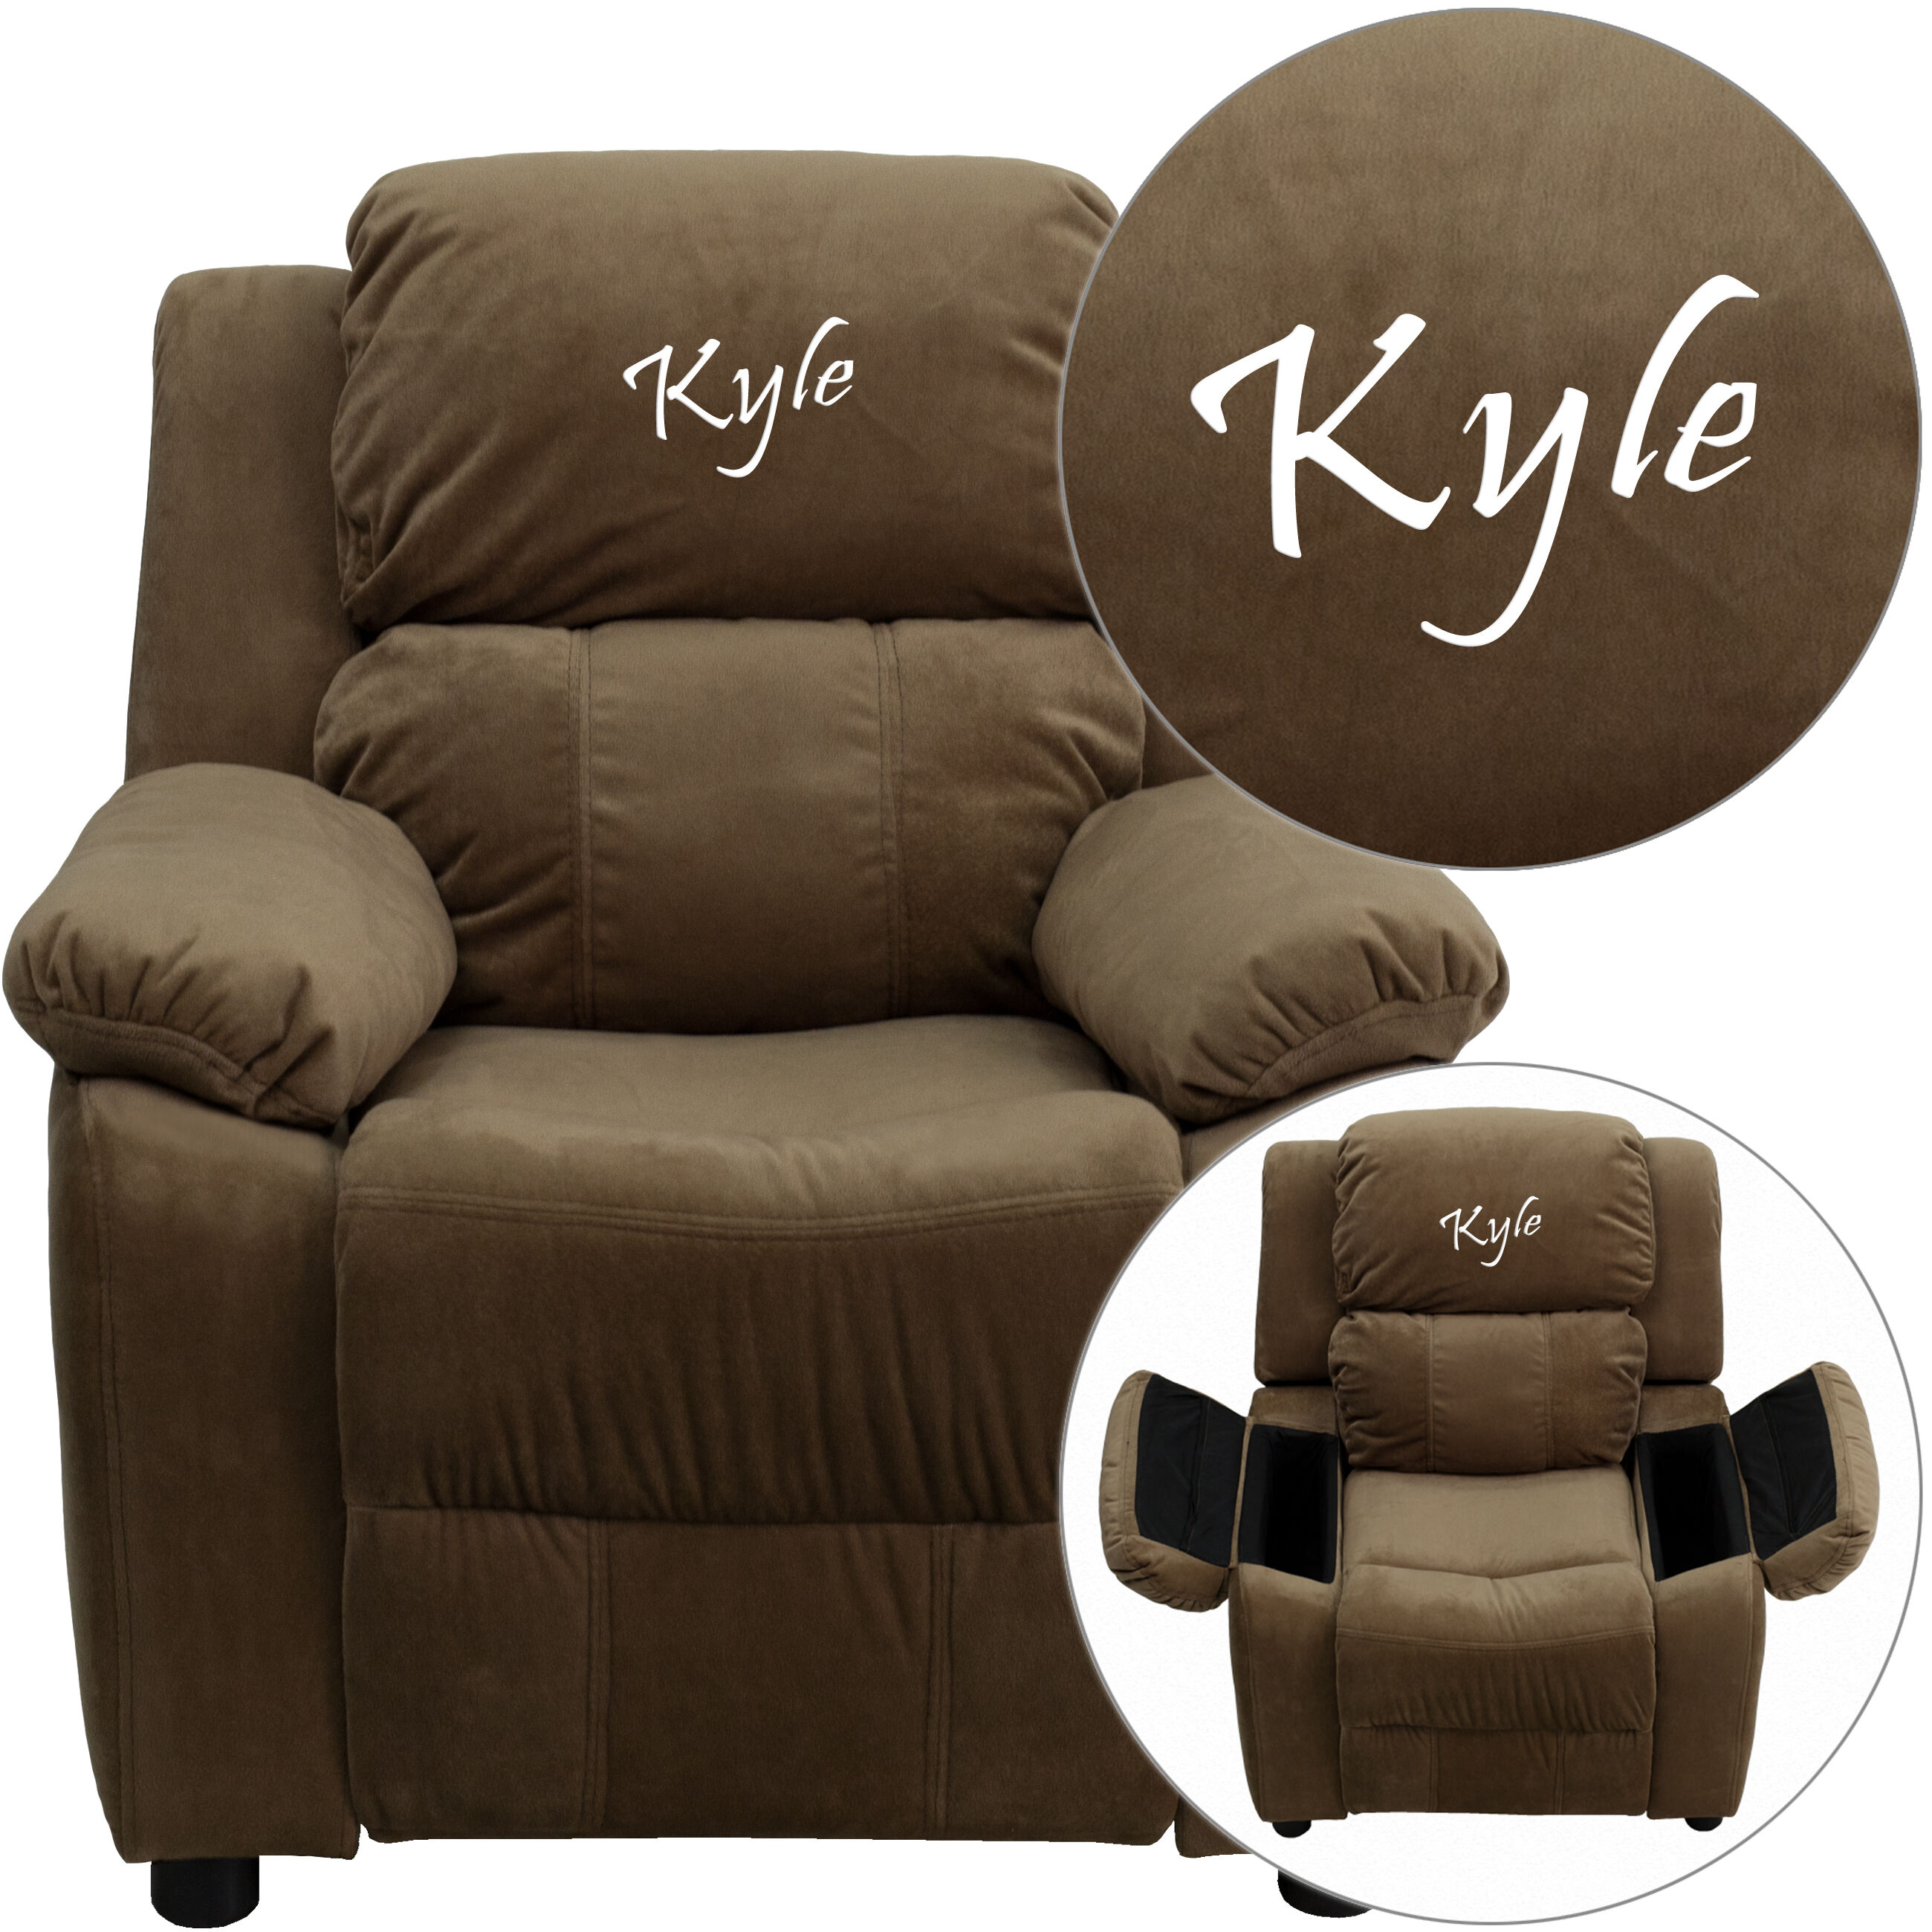 Personalized Deluxe Padded Brown Microfiber Kids Recliner with Storage Arms  sc 1 st  Bizchair.com & Personalized Kids Recliners at low budget prices | Bizchair.com islam-shia.org